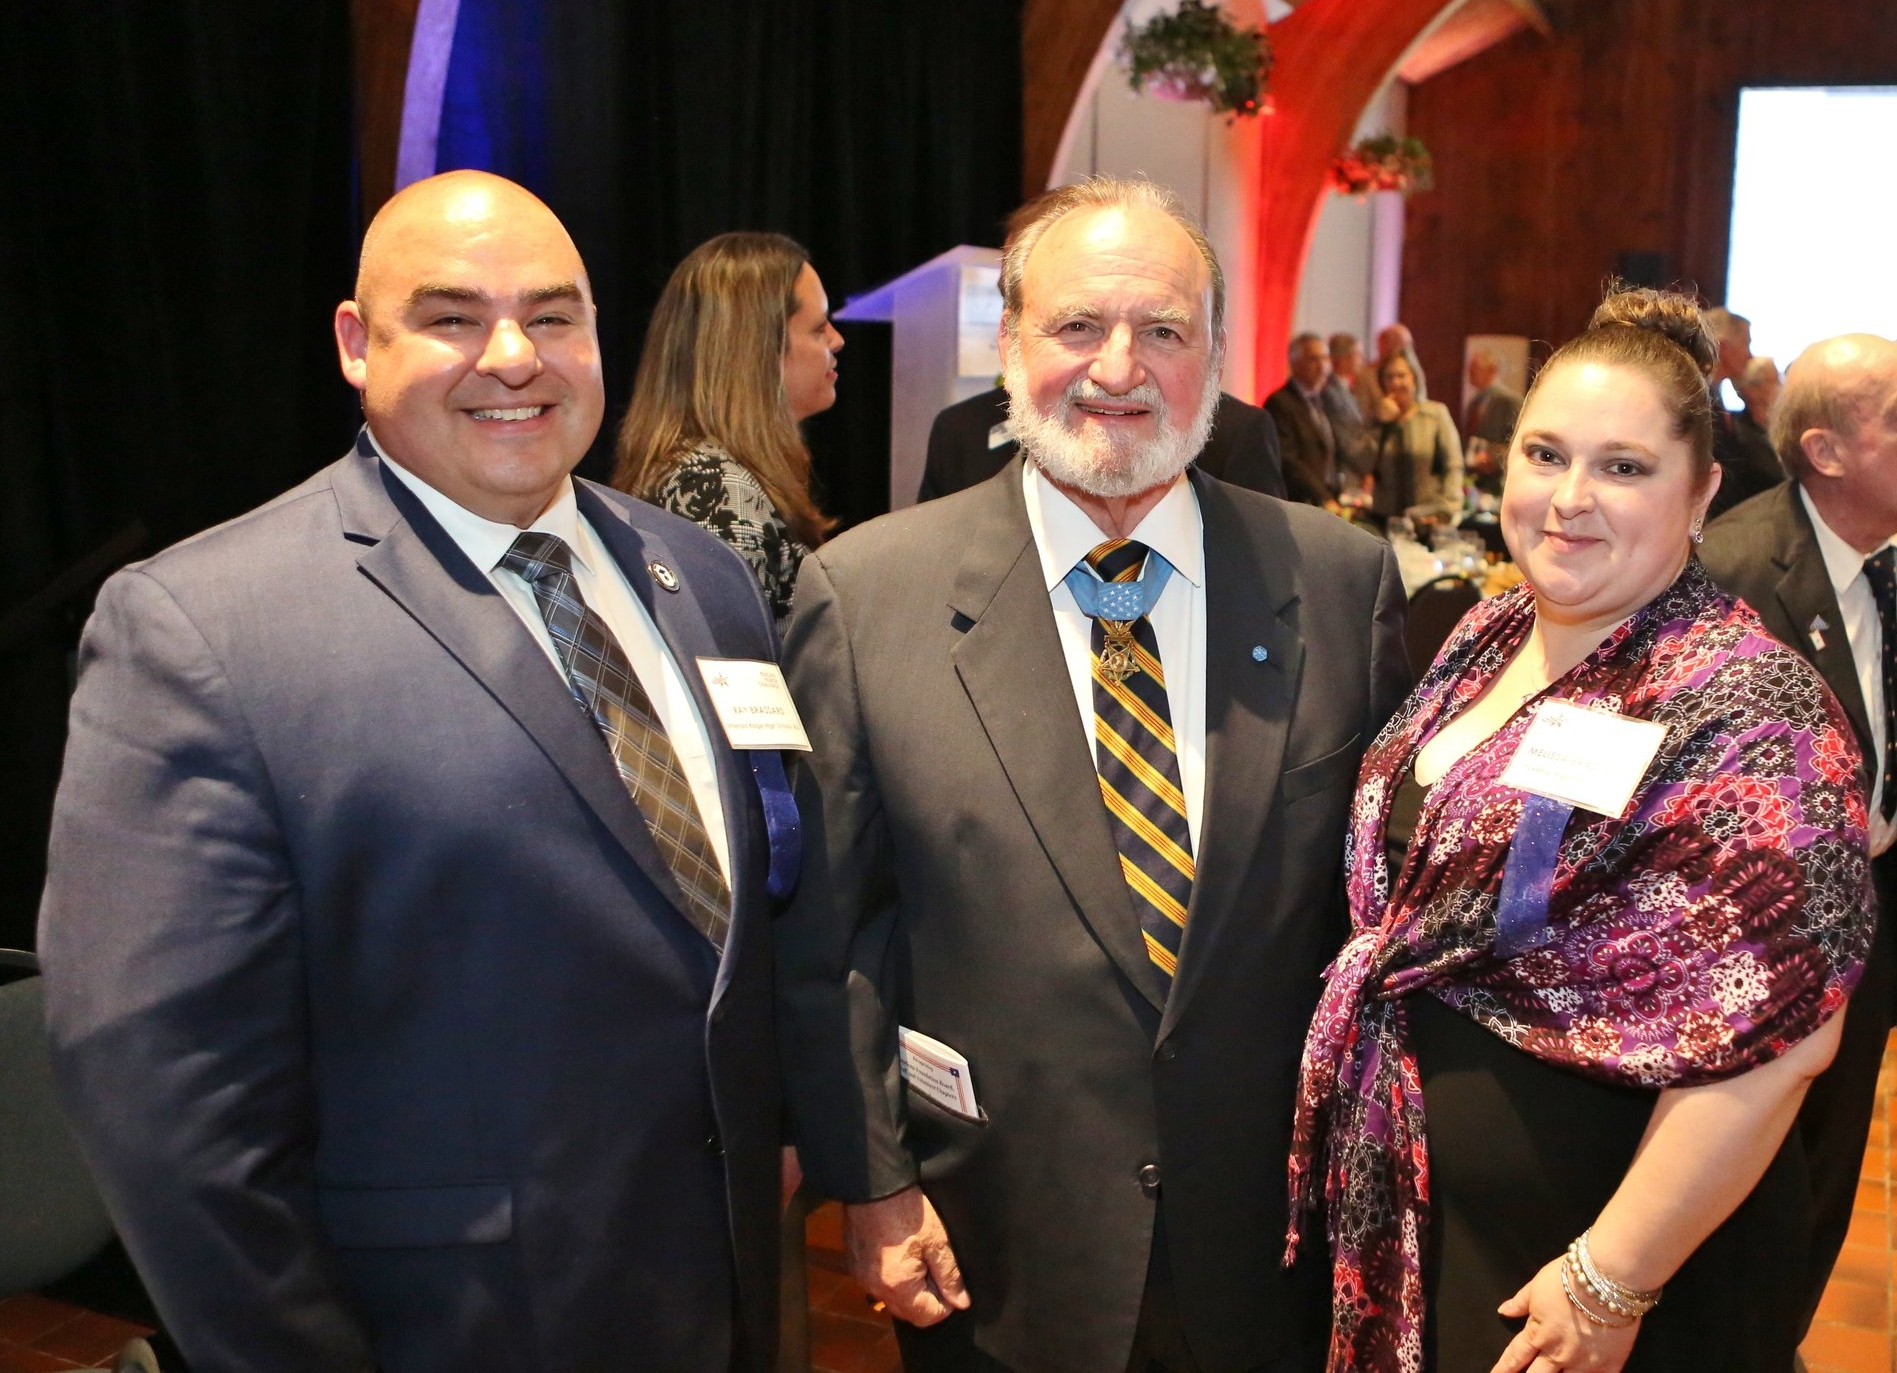 Ray and Melissa Brassard with Medal of Honor recipient Brian Thacker (photo by Freedoms Foundation at Valley Forge)